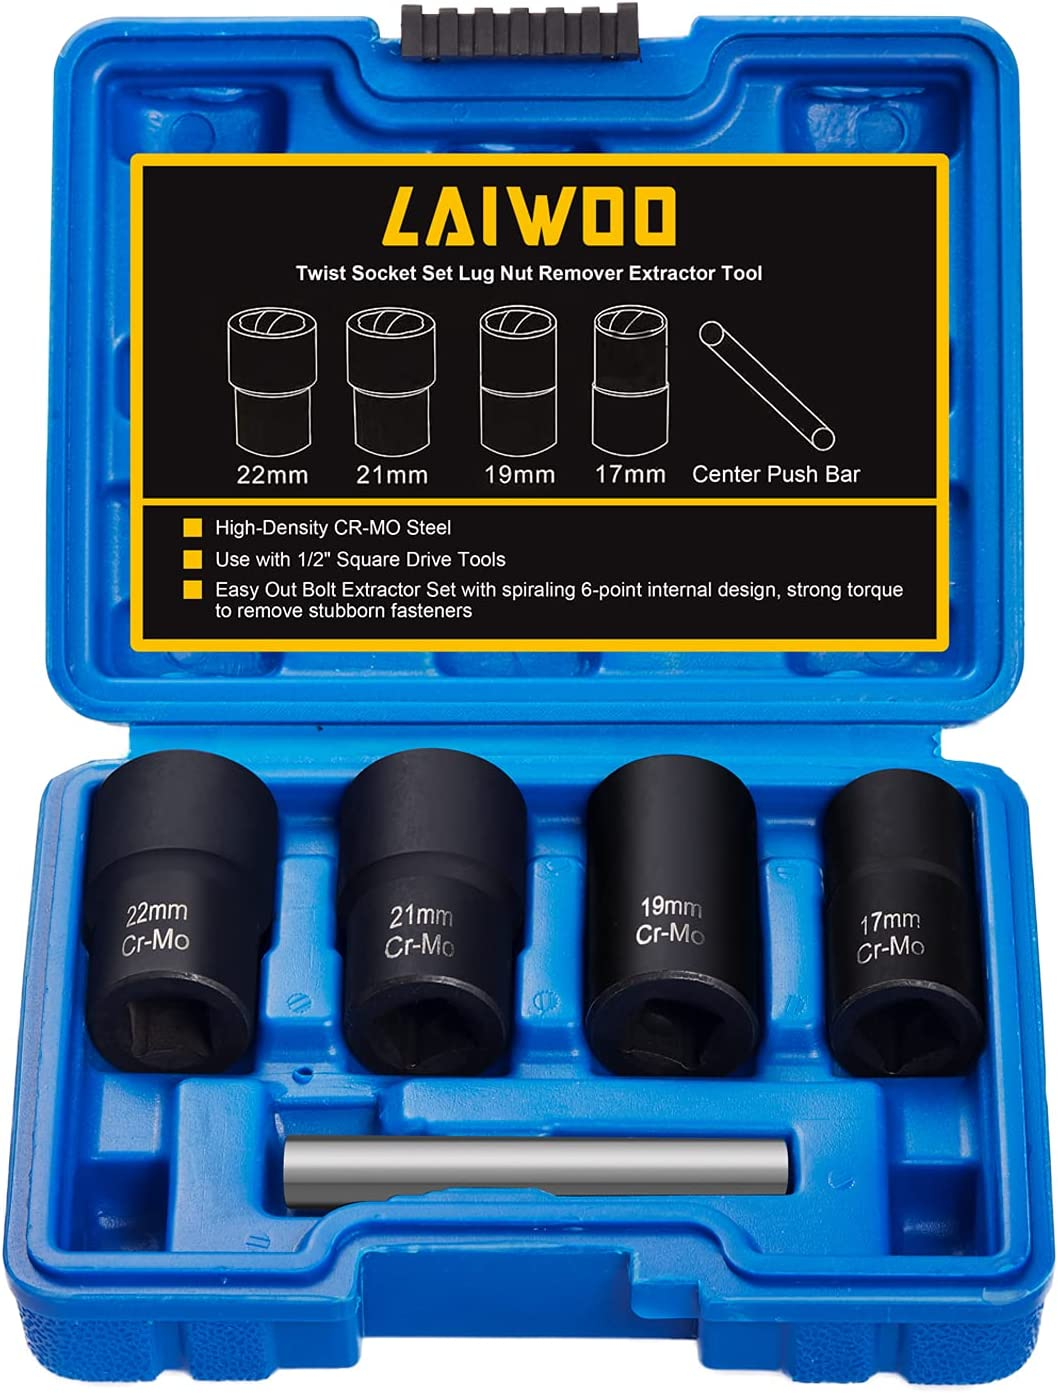 LAIWOO Twist Socket Set Purchase Lug Nut Our shop OFFers the best service Extractor Tool Remover 1 CR-MO